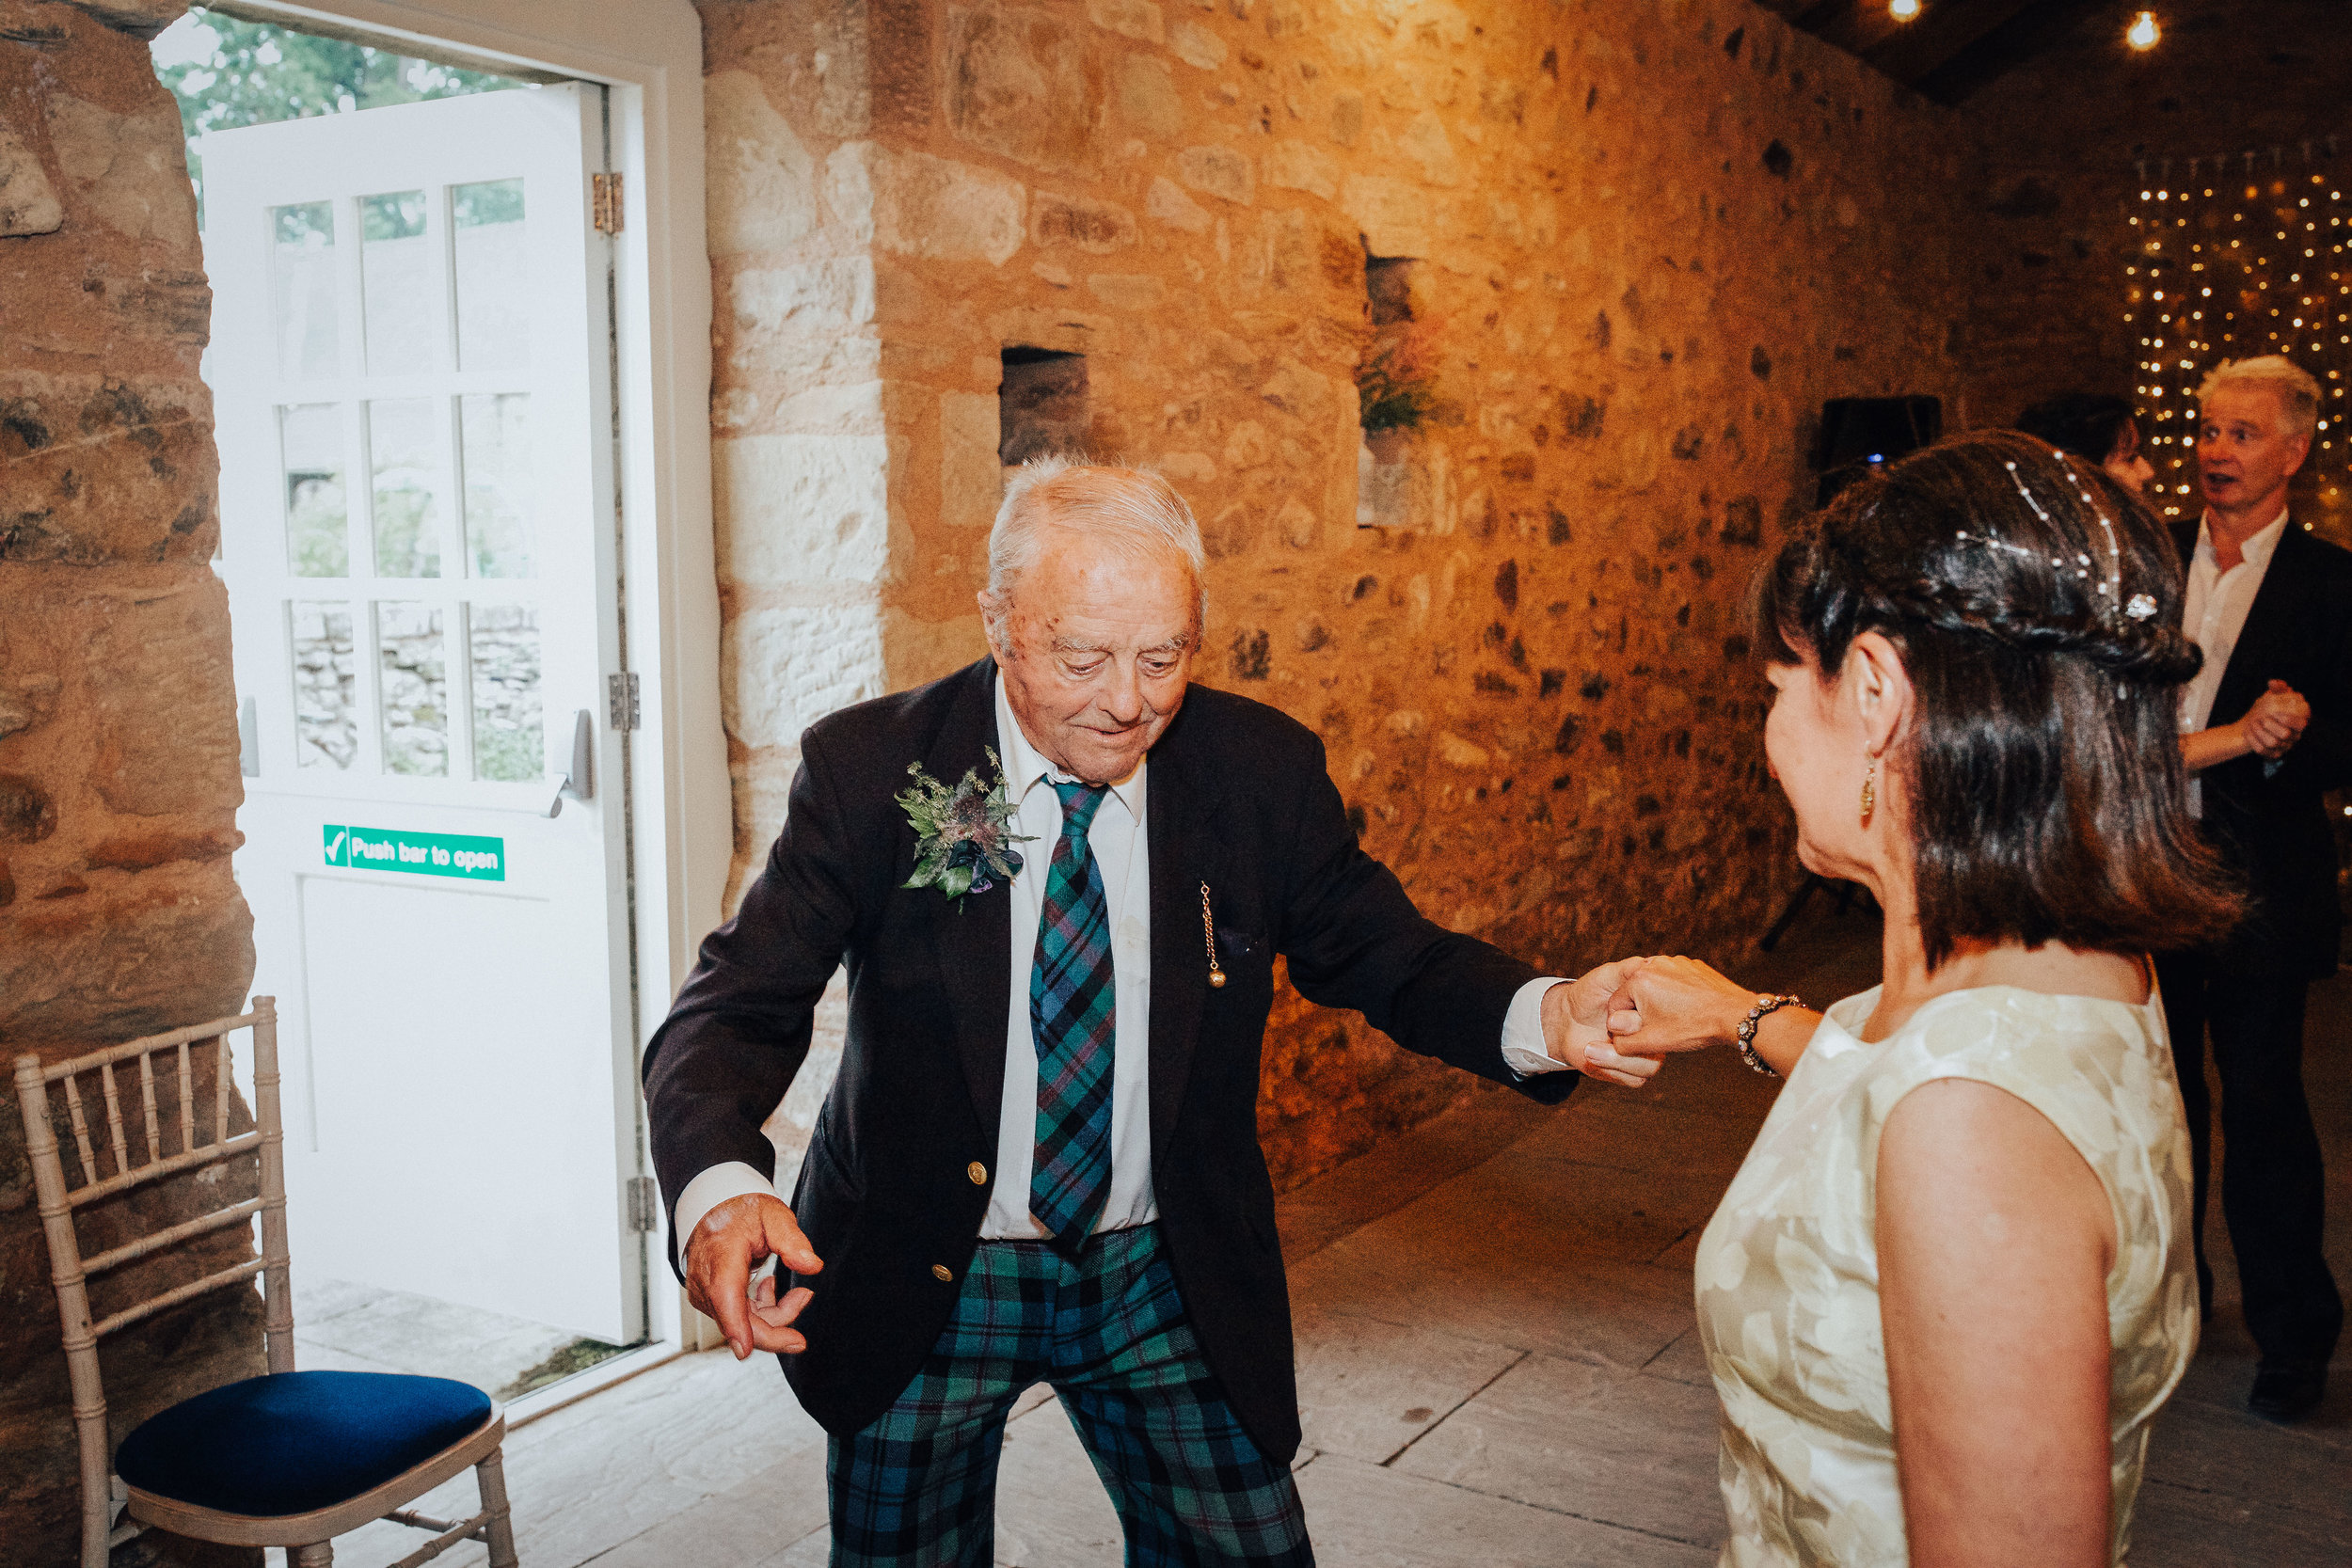 PJ_PHILLIPS_PHOTOGRAPHY_EDINBURGH_WEDDERBURN_BARNS_WEDDING_EDINBURGH_WEDDING_PHOTOGRAPHER_141.jpg